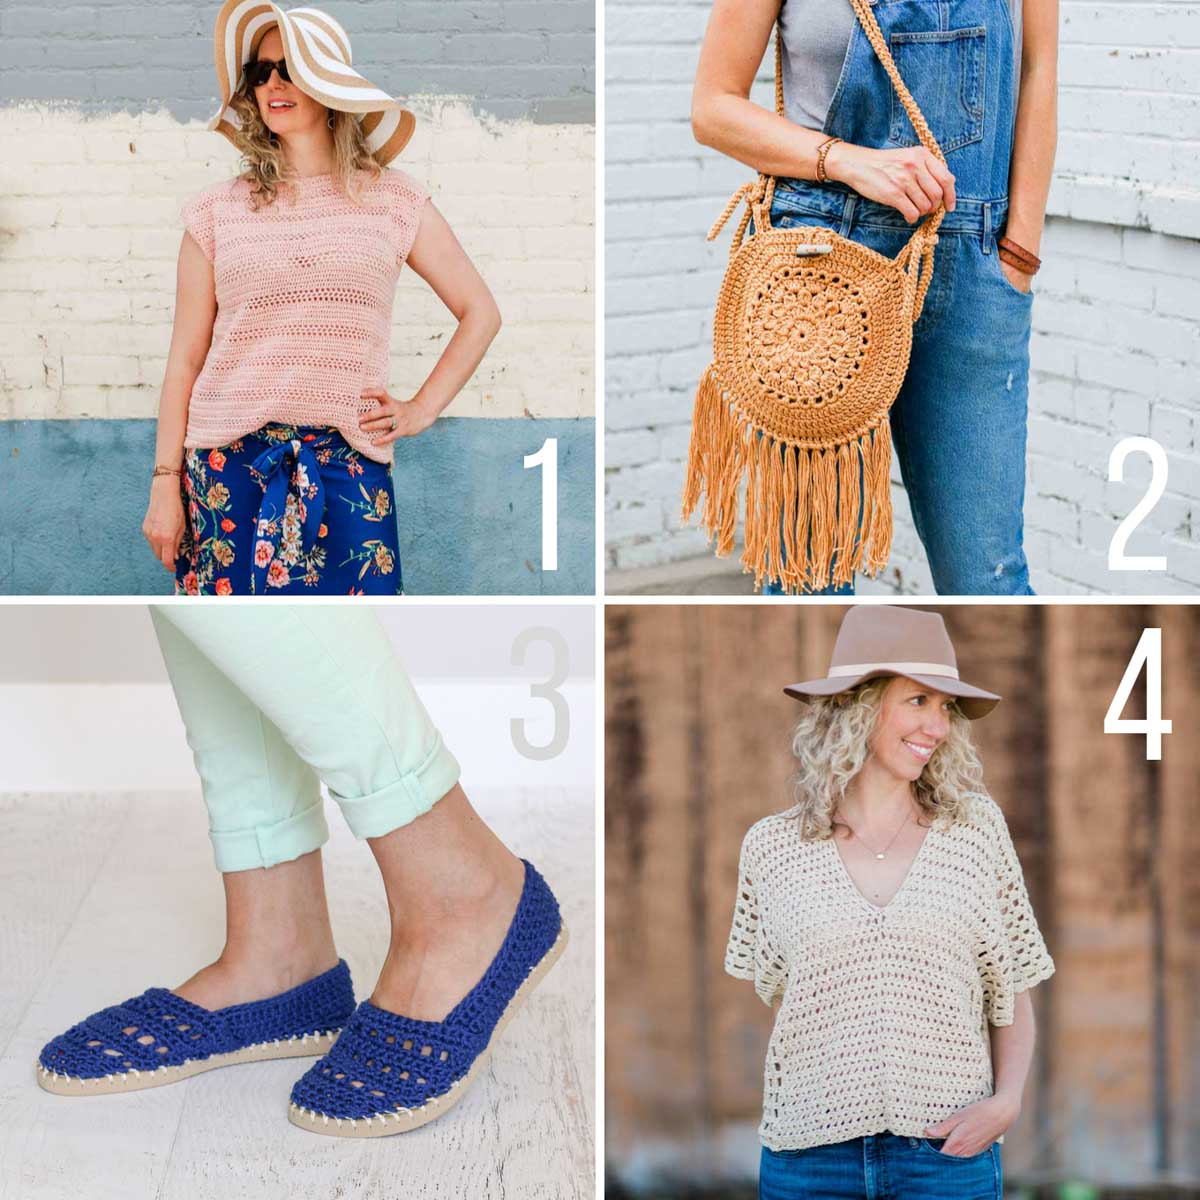 Free crochet patterns for warm weather. Includes two crochet tops, a crochet purse with fringe, and crochet slip-on shoes.